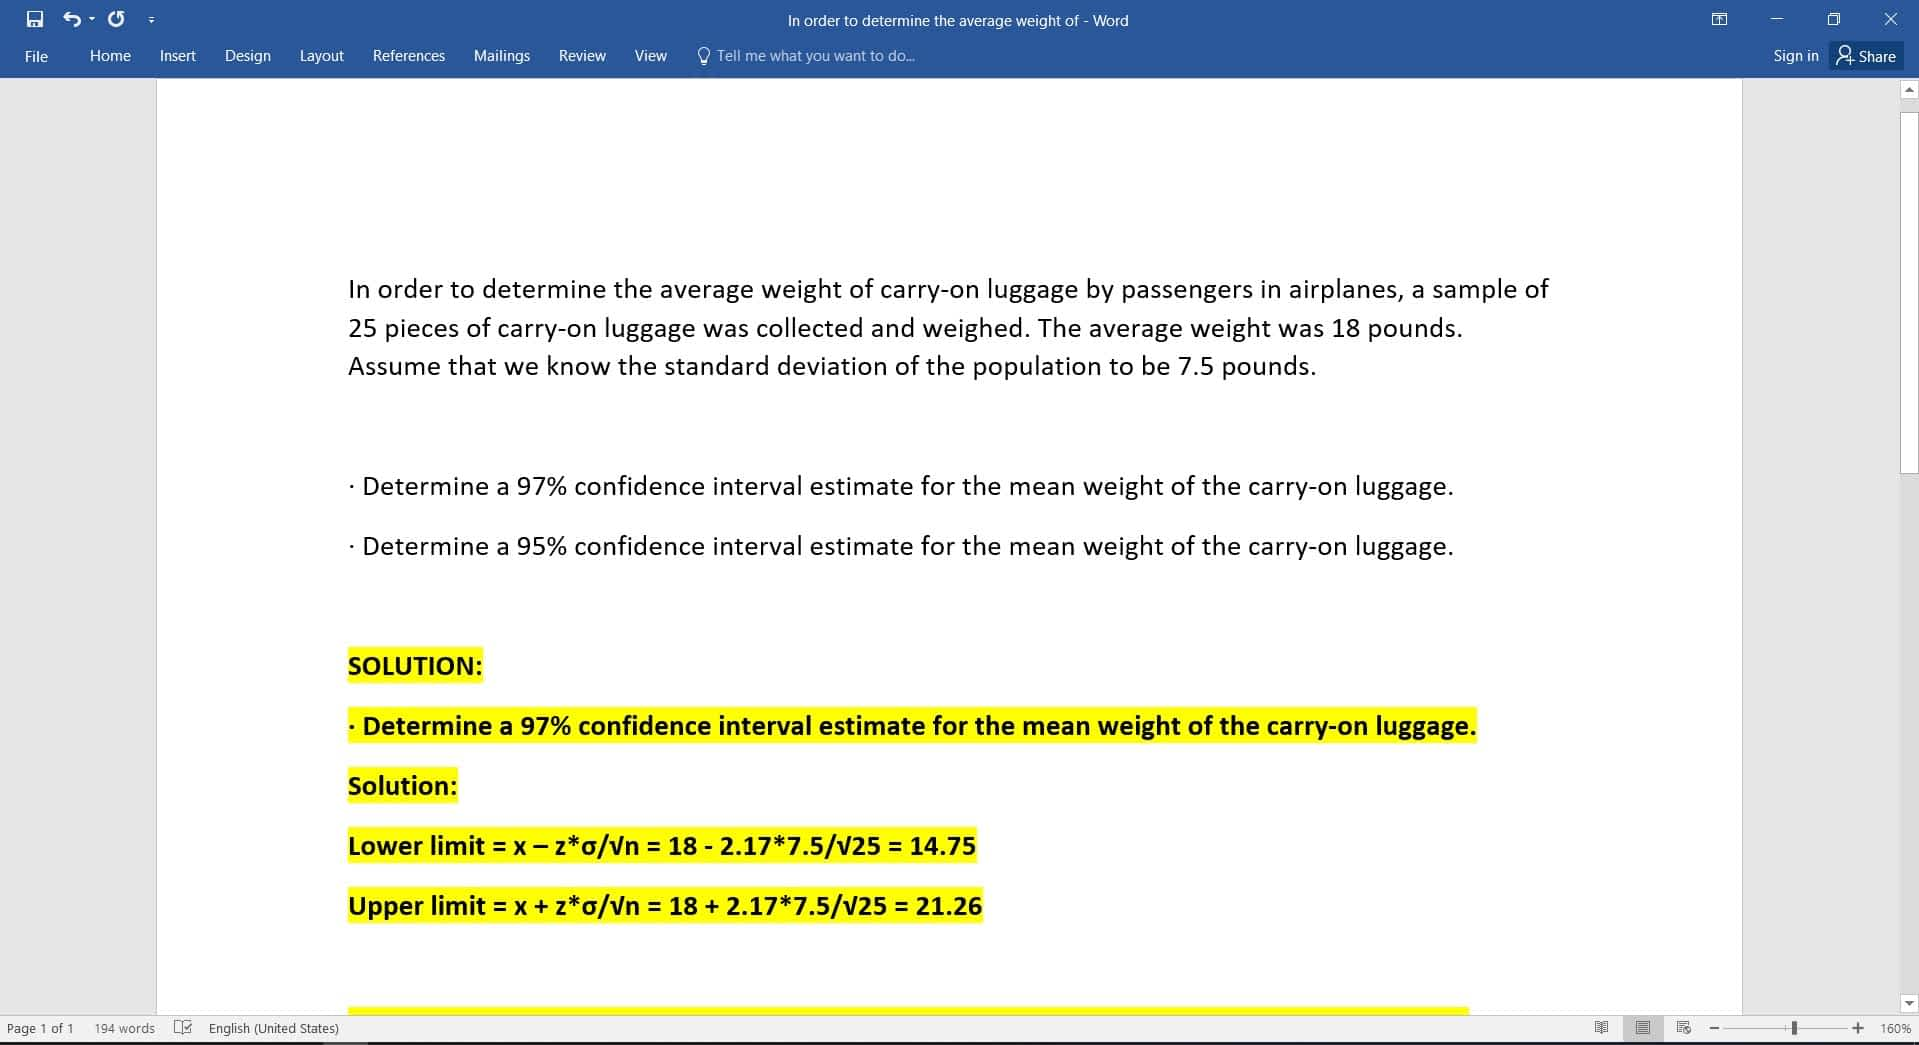 In order to determine the average weight of 1